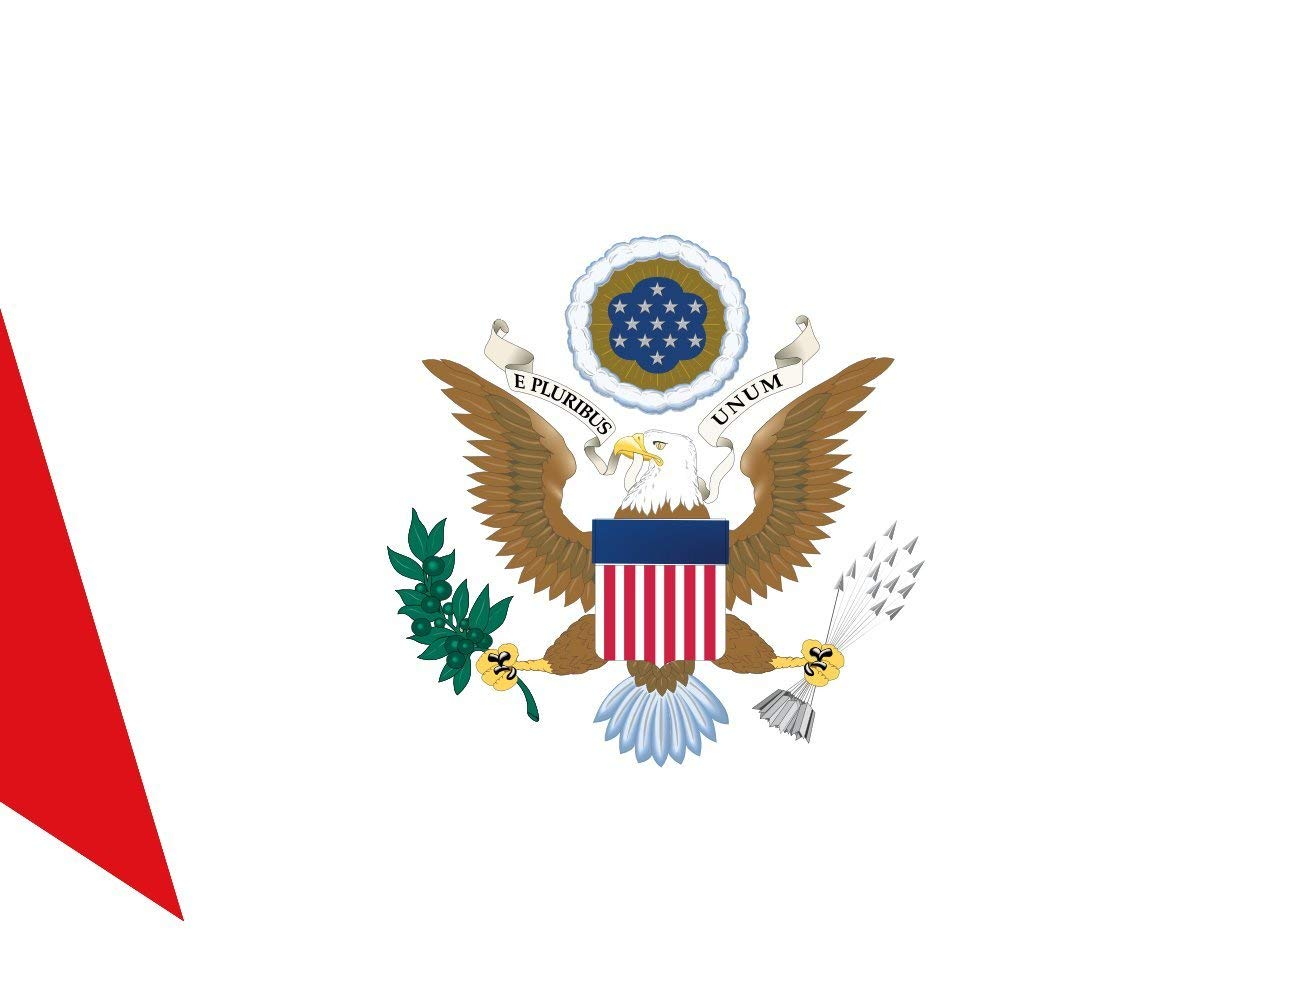 magFlags Large Flag Standard of the United States Assistant Secretary of War   landscape flag   1.35m²   14.5sqft   100x130cm   40x50inch - 100% Made in Germany - long lasting outdoor flag